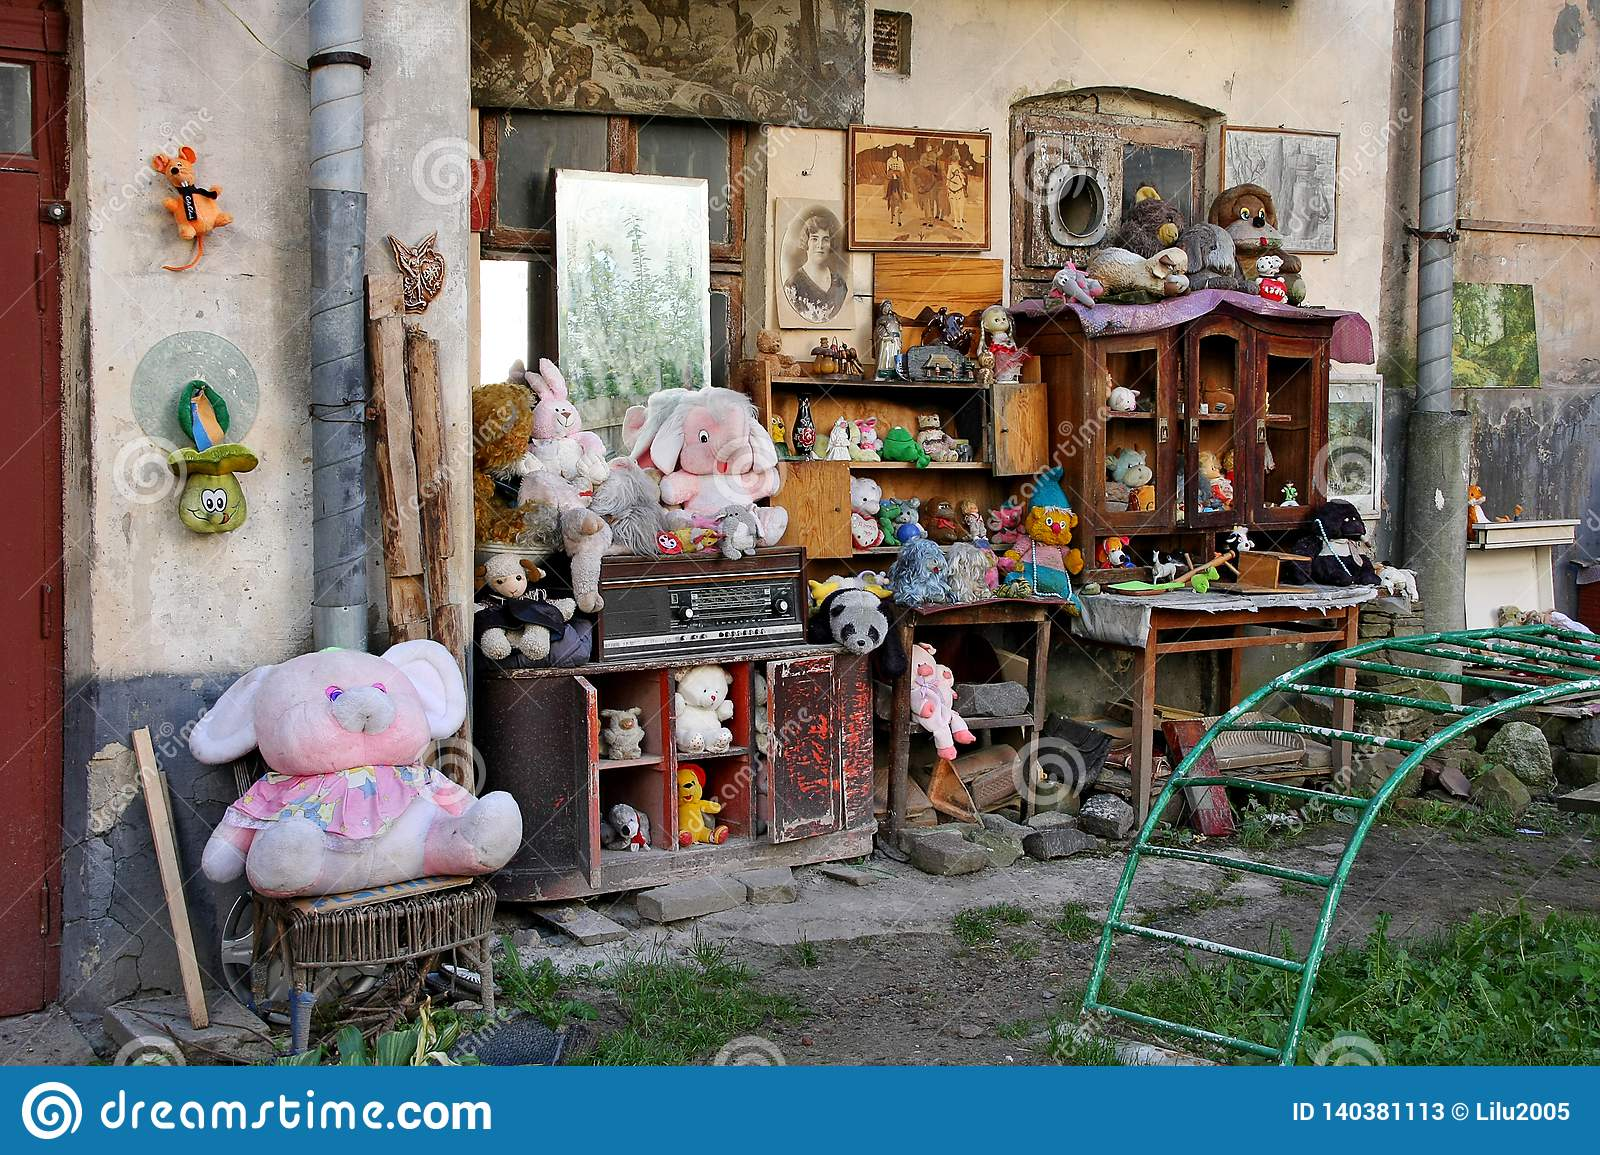 LVIV, Ukraine - SEPTEMBER 28, 2014: The yard of lost toys in Lviv is an open-air museum